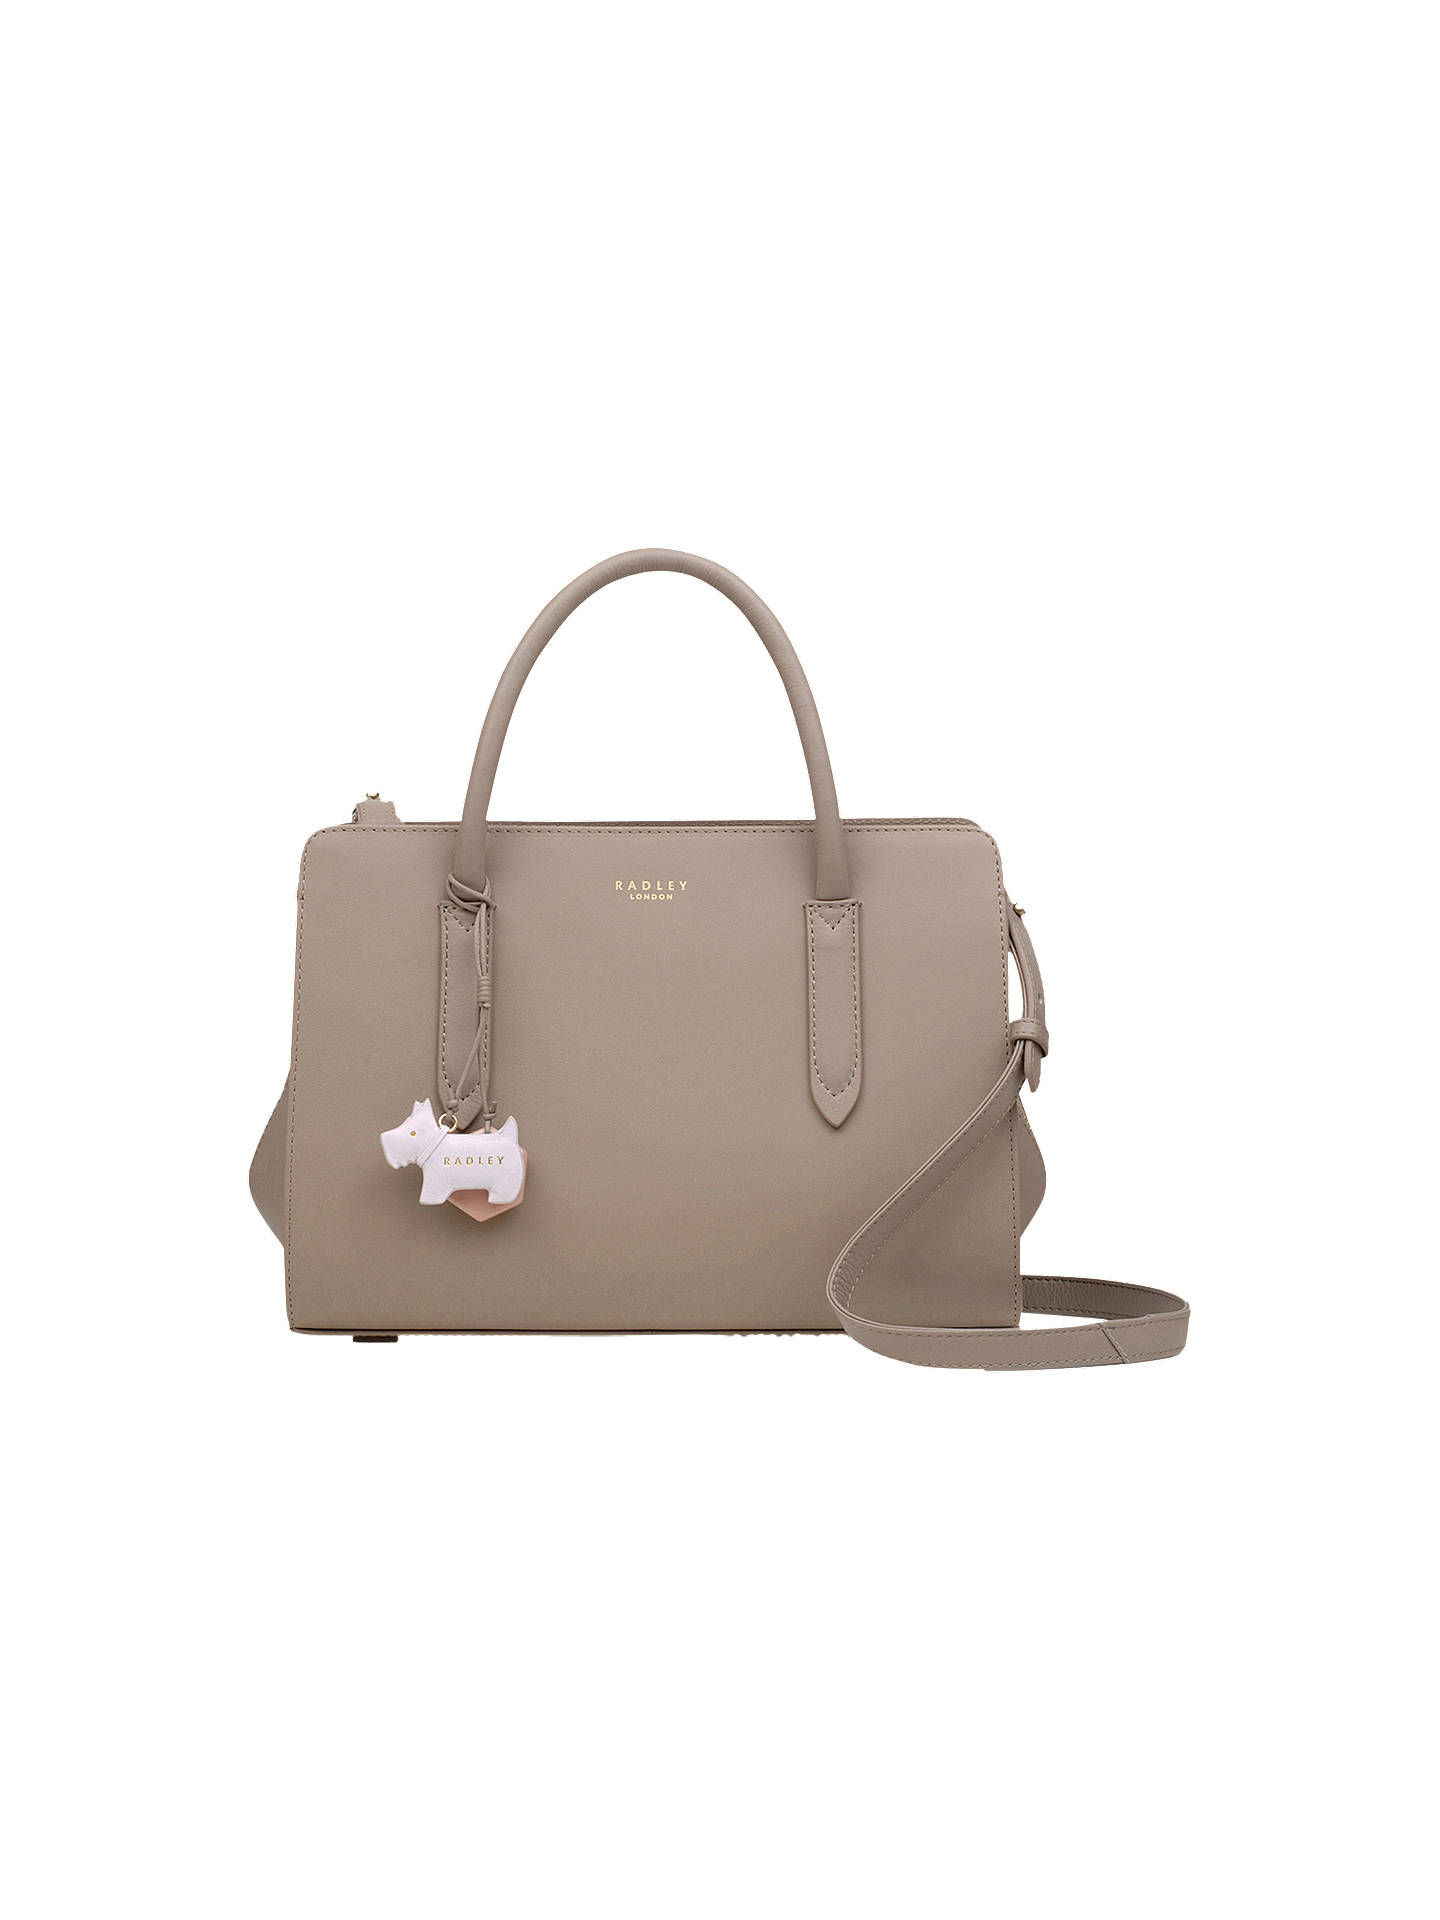 Radley Liverpool Street Medium Leather Grab Bag Brown Online At Johnlewis